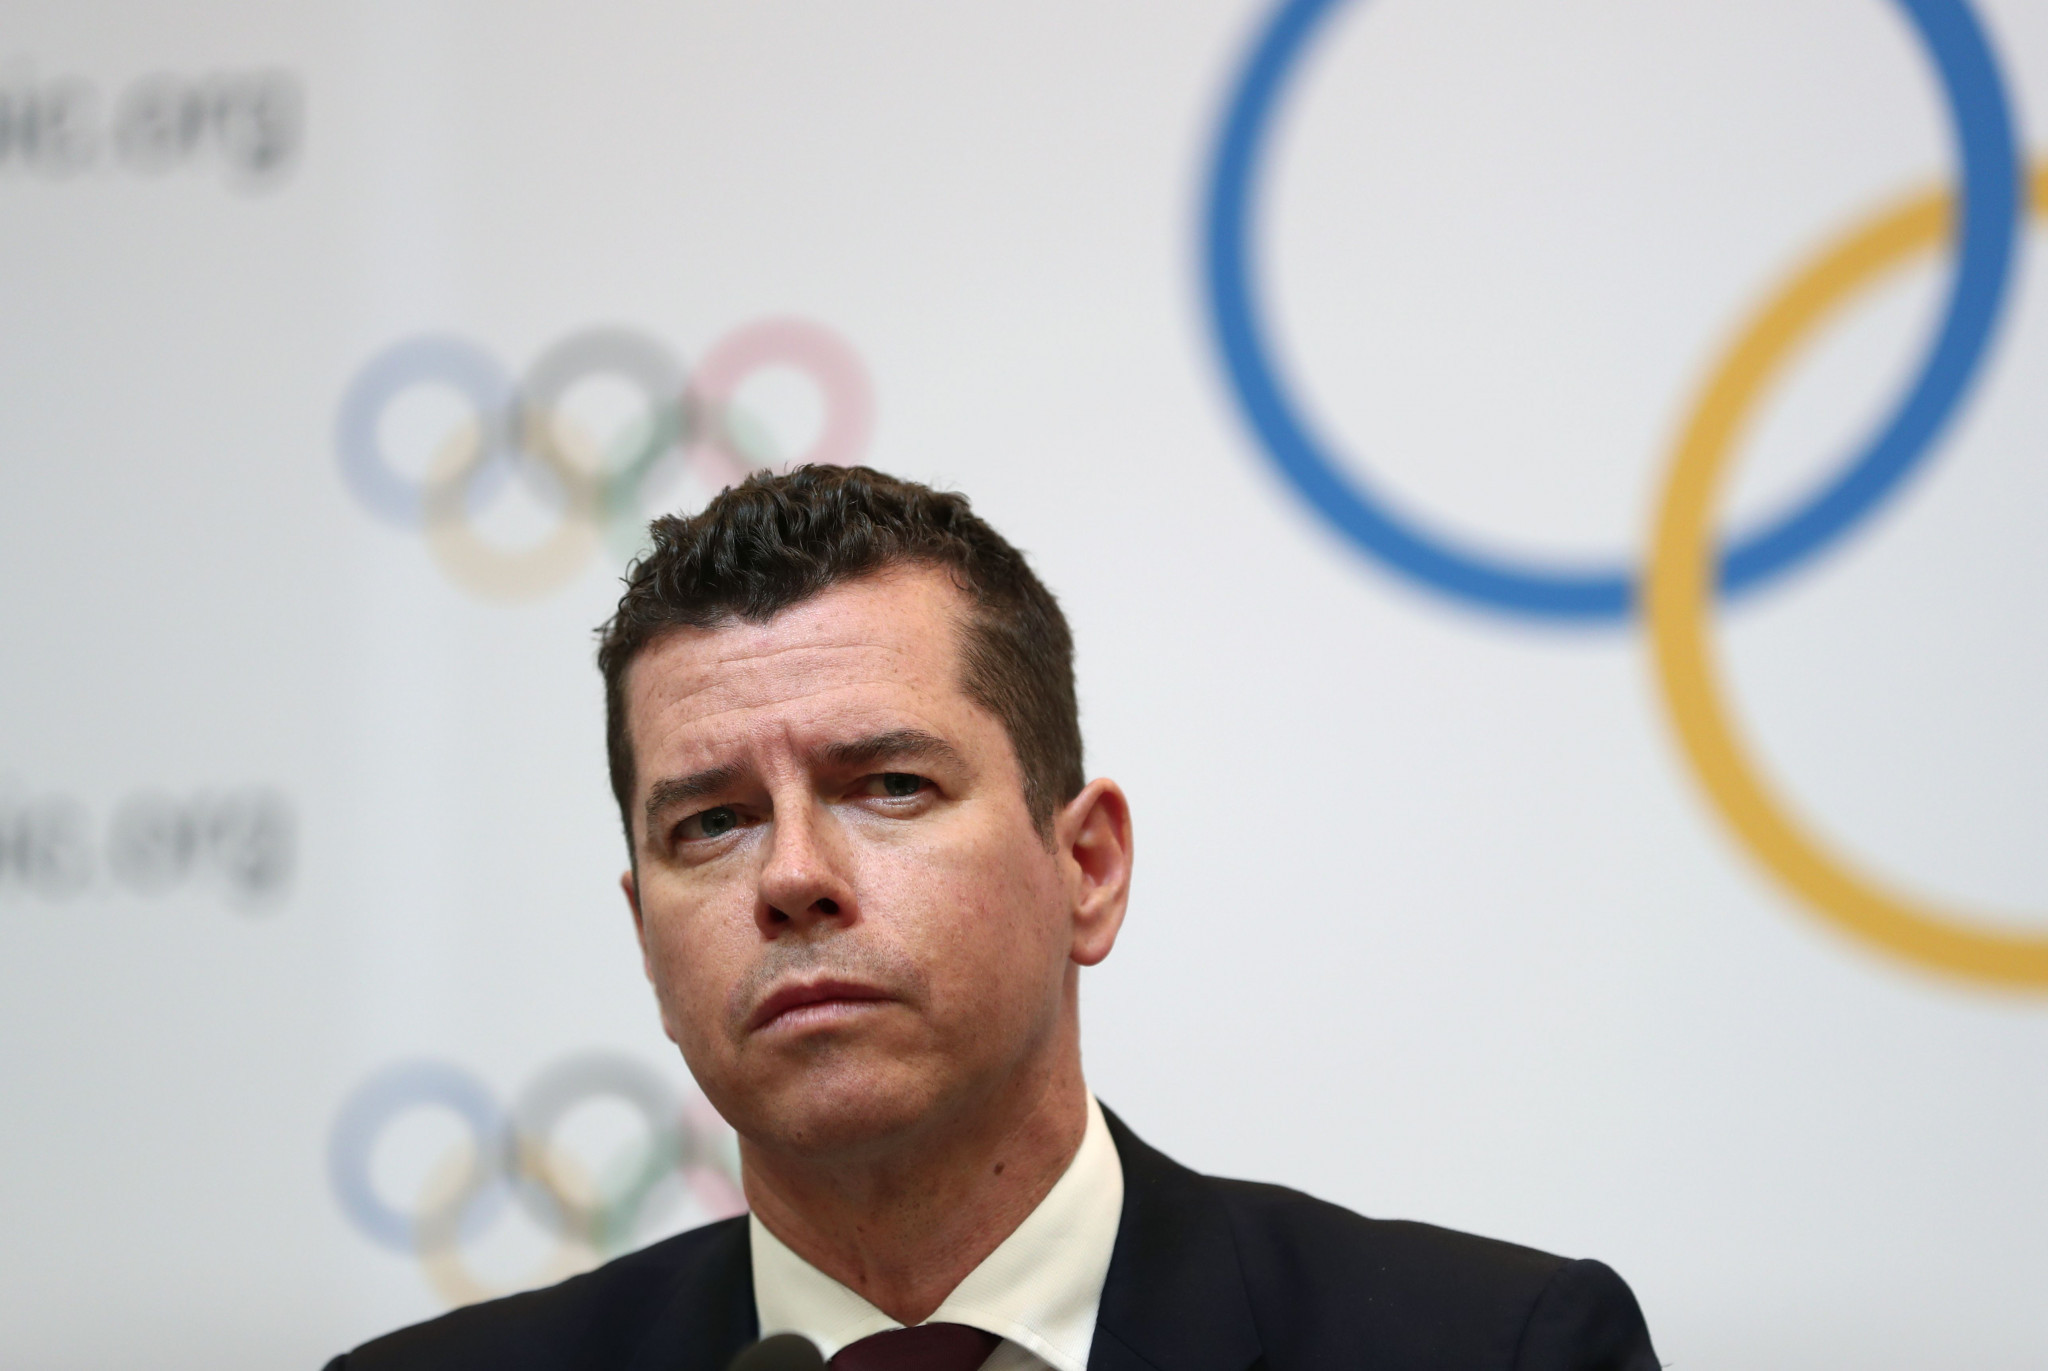 IOC sports director Kit McConnell has revealed that a strategy has been developed to help International Federations respond to a COVID-19 case ©Getty Images